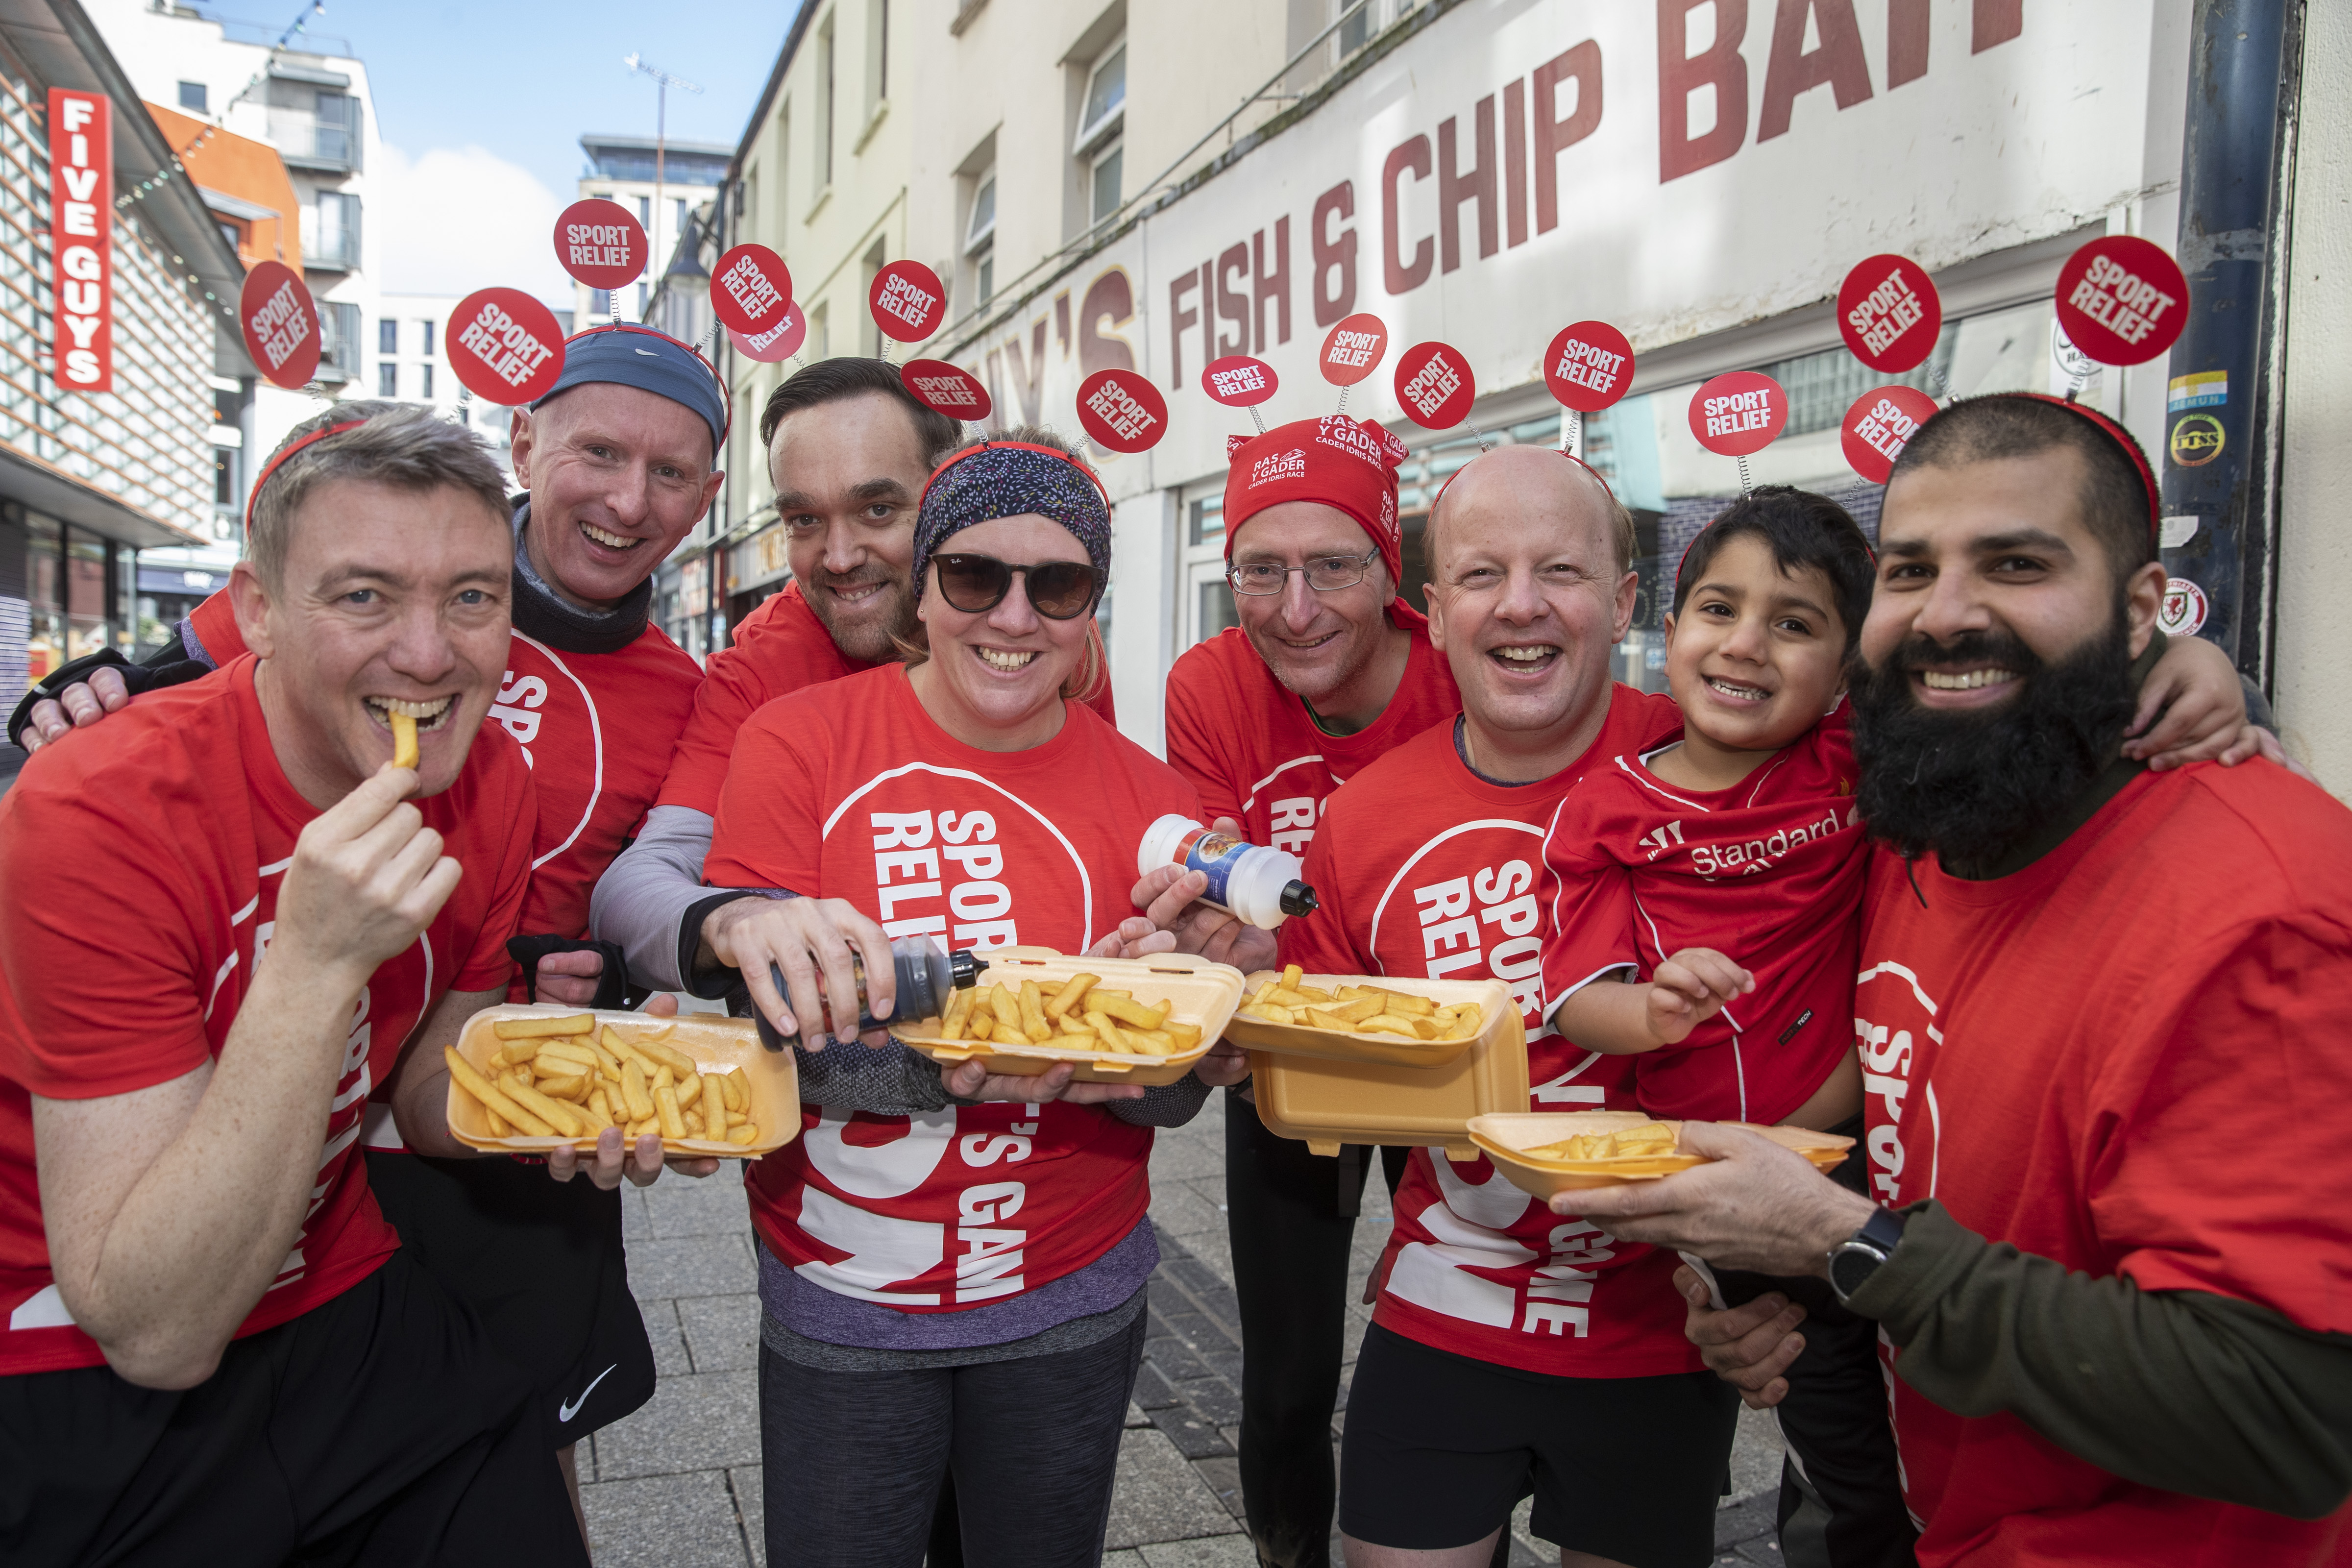 PIC (C) HUW JOHN, CARDIFFMANDATORY BYLINE : HUW JOHN, CARDIFF - 08/03/2020  Runners relay on Chippy Alley Cardiff for Sport Relief